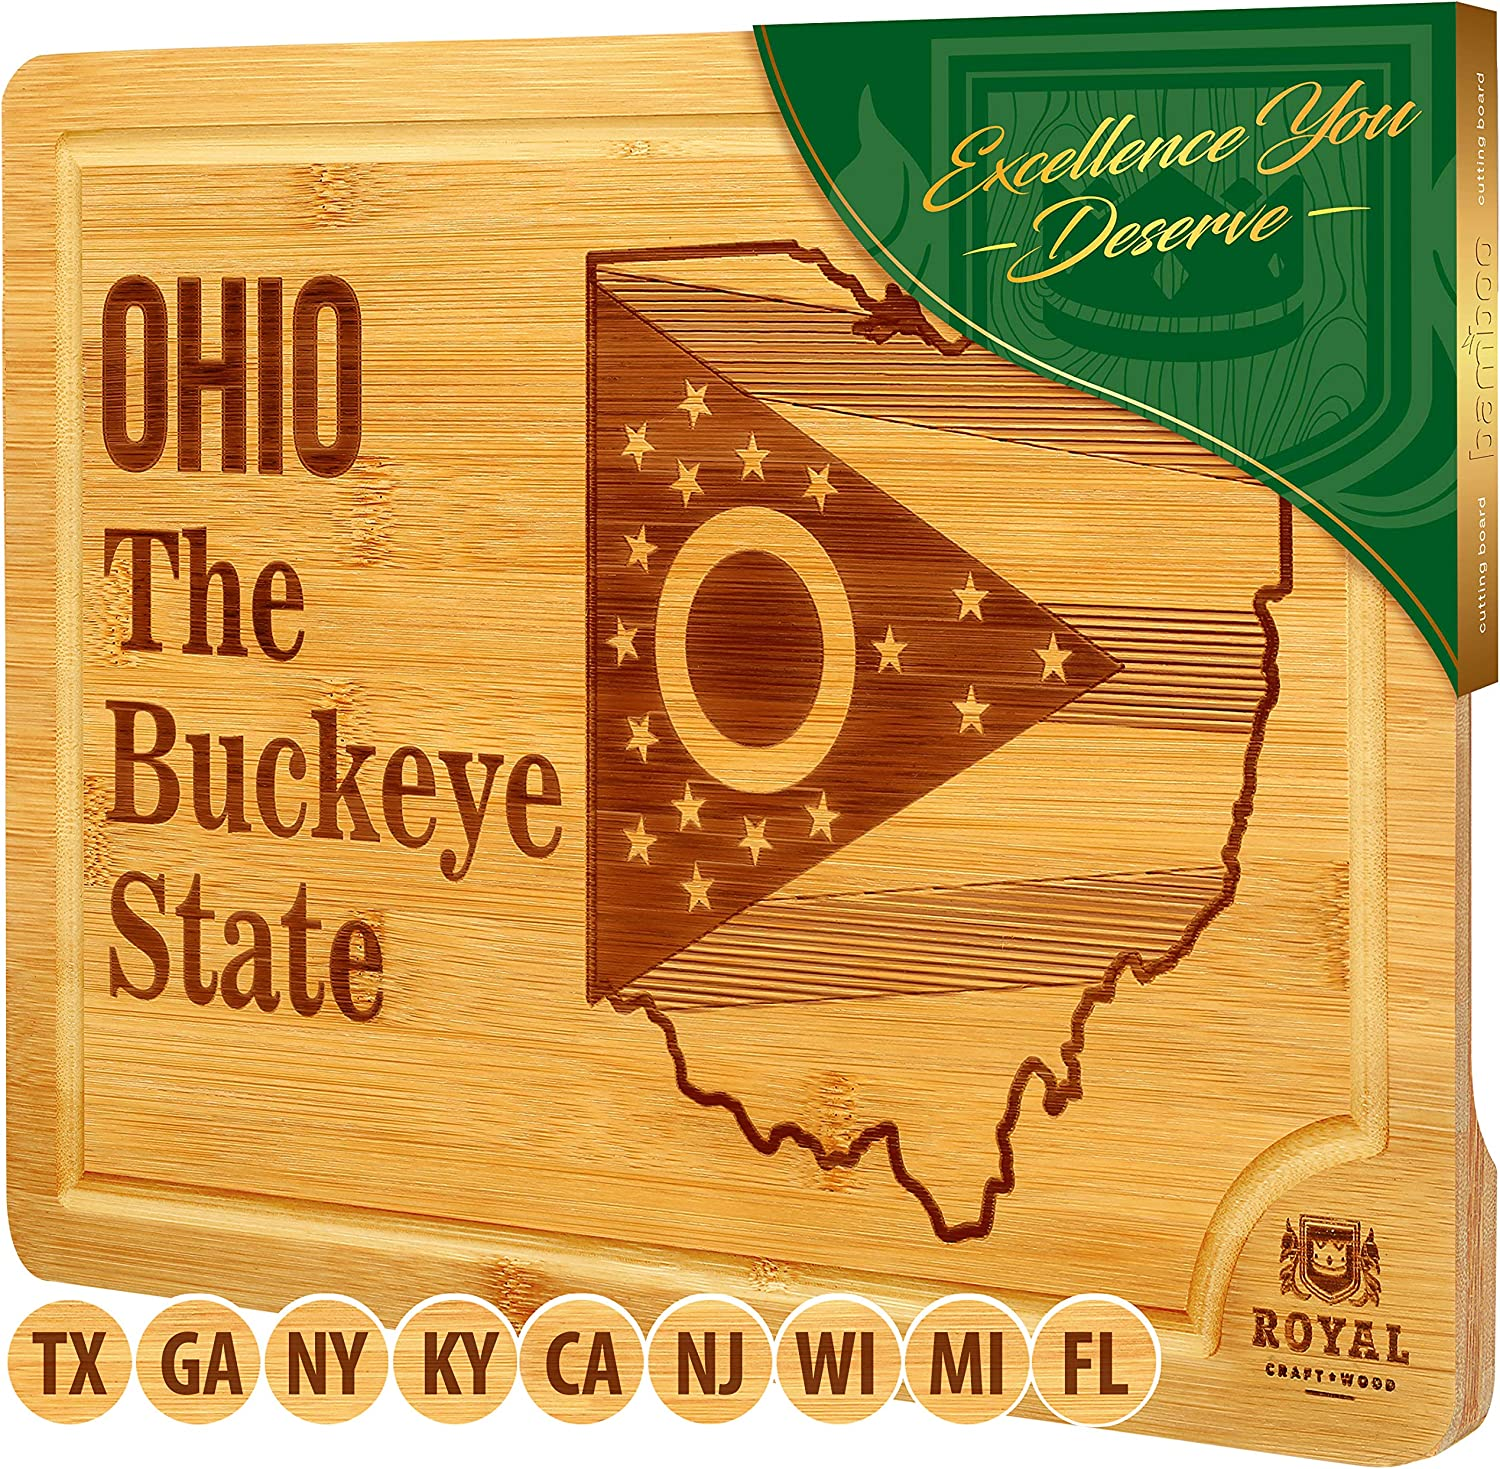 Bamboo State Cutting Board for Kitchen – Ohio Cheese Board, Charcuterie Platter & Serving Tray, (15